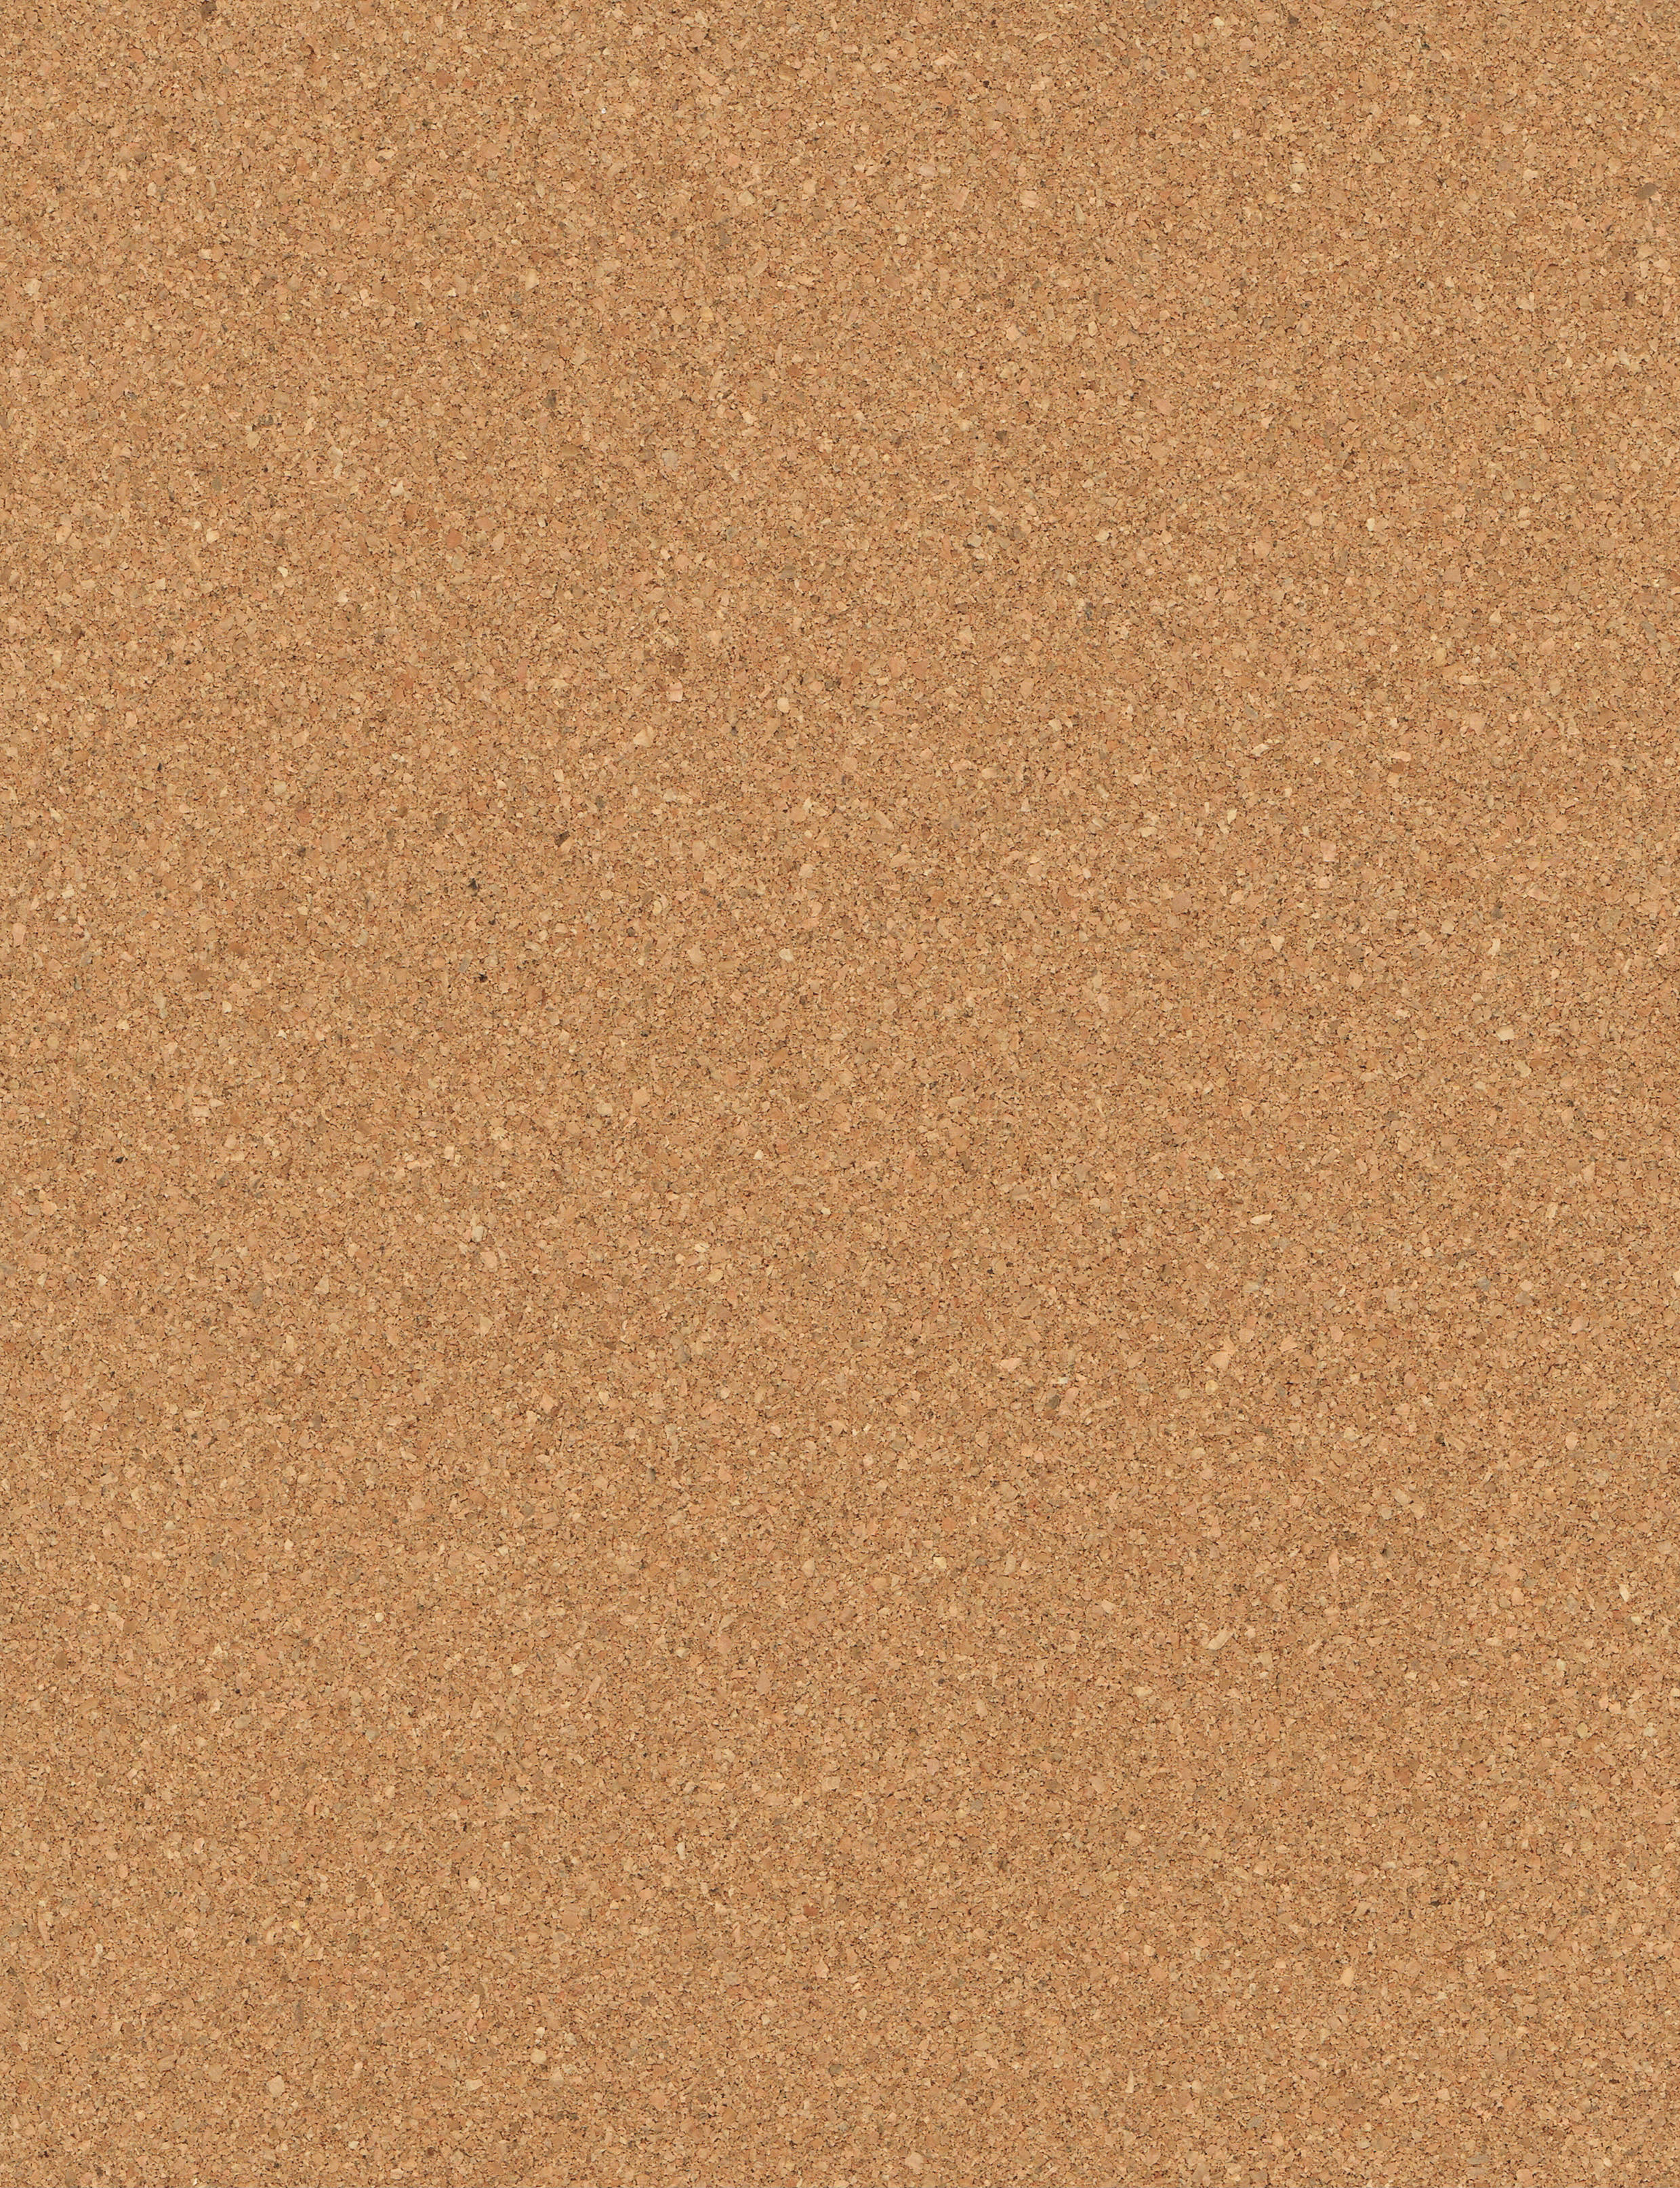 cork board background viewing gallery